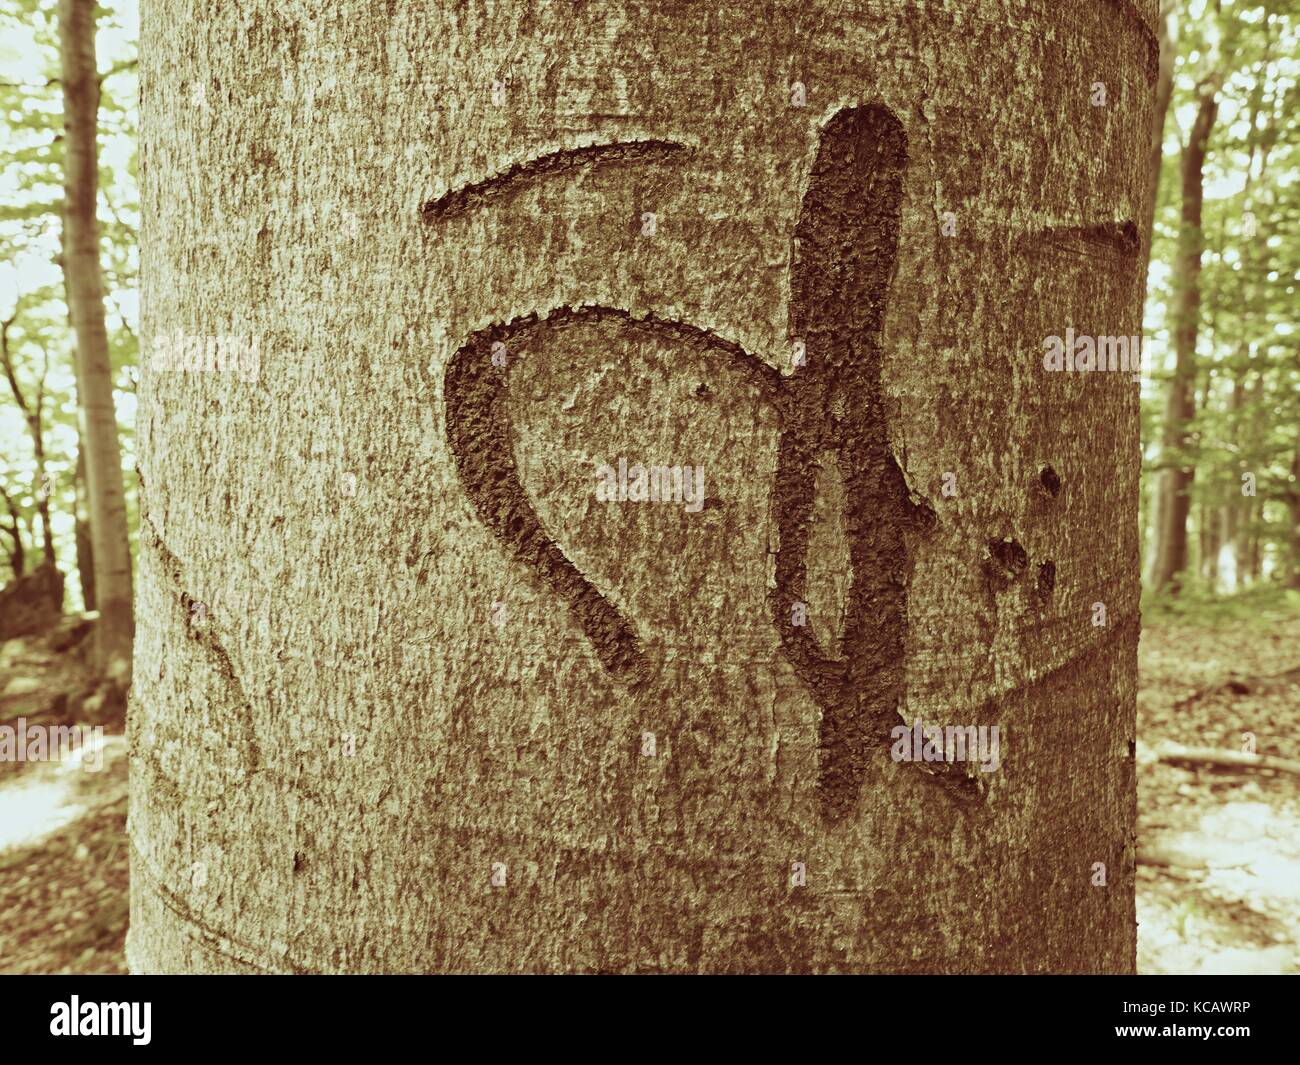 Chinese or Japanese letter. Knife carving on beech tree bark. Tree vandalism in a forest park - Stock Image